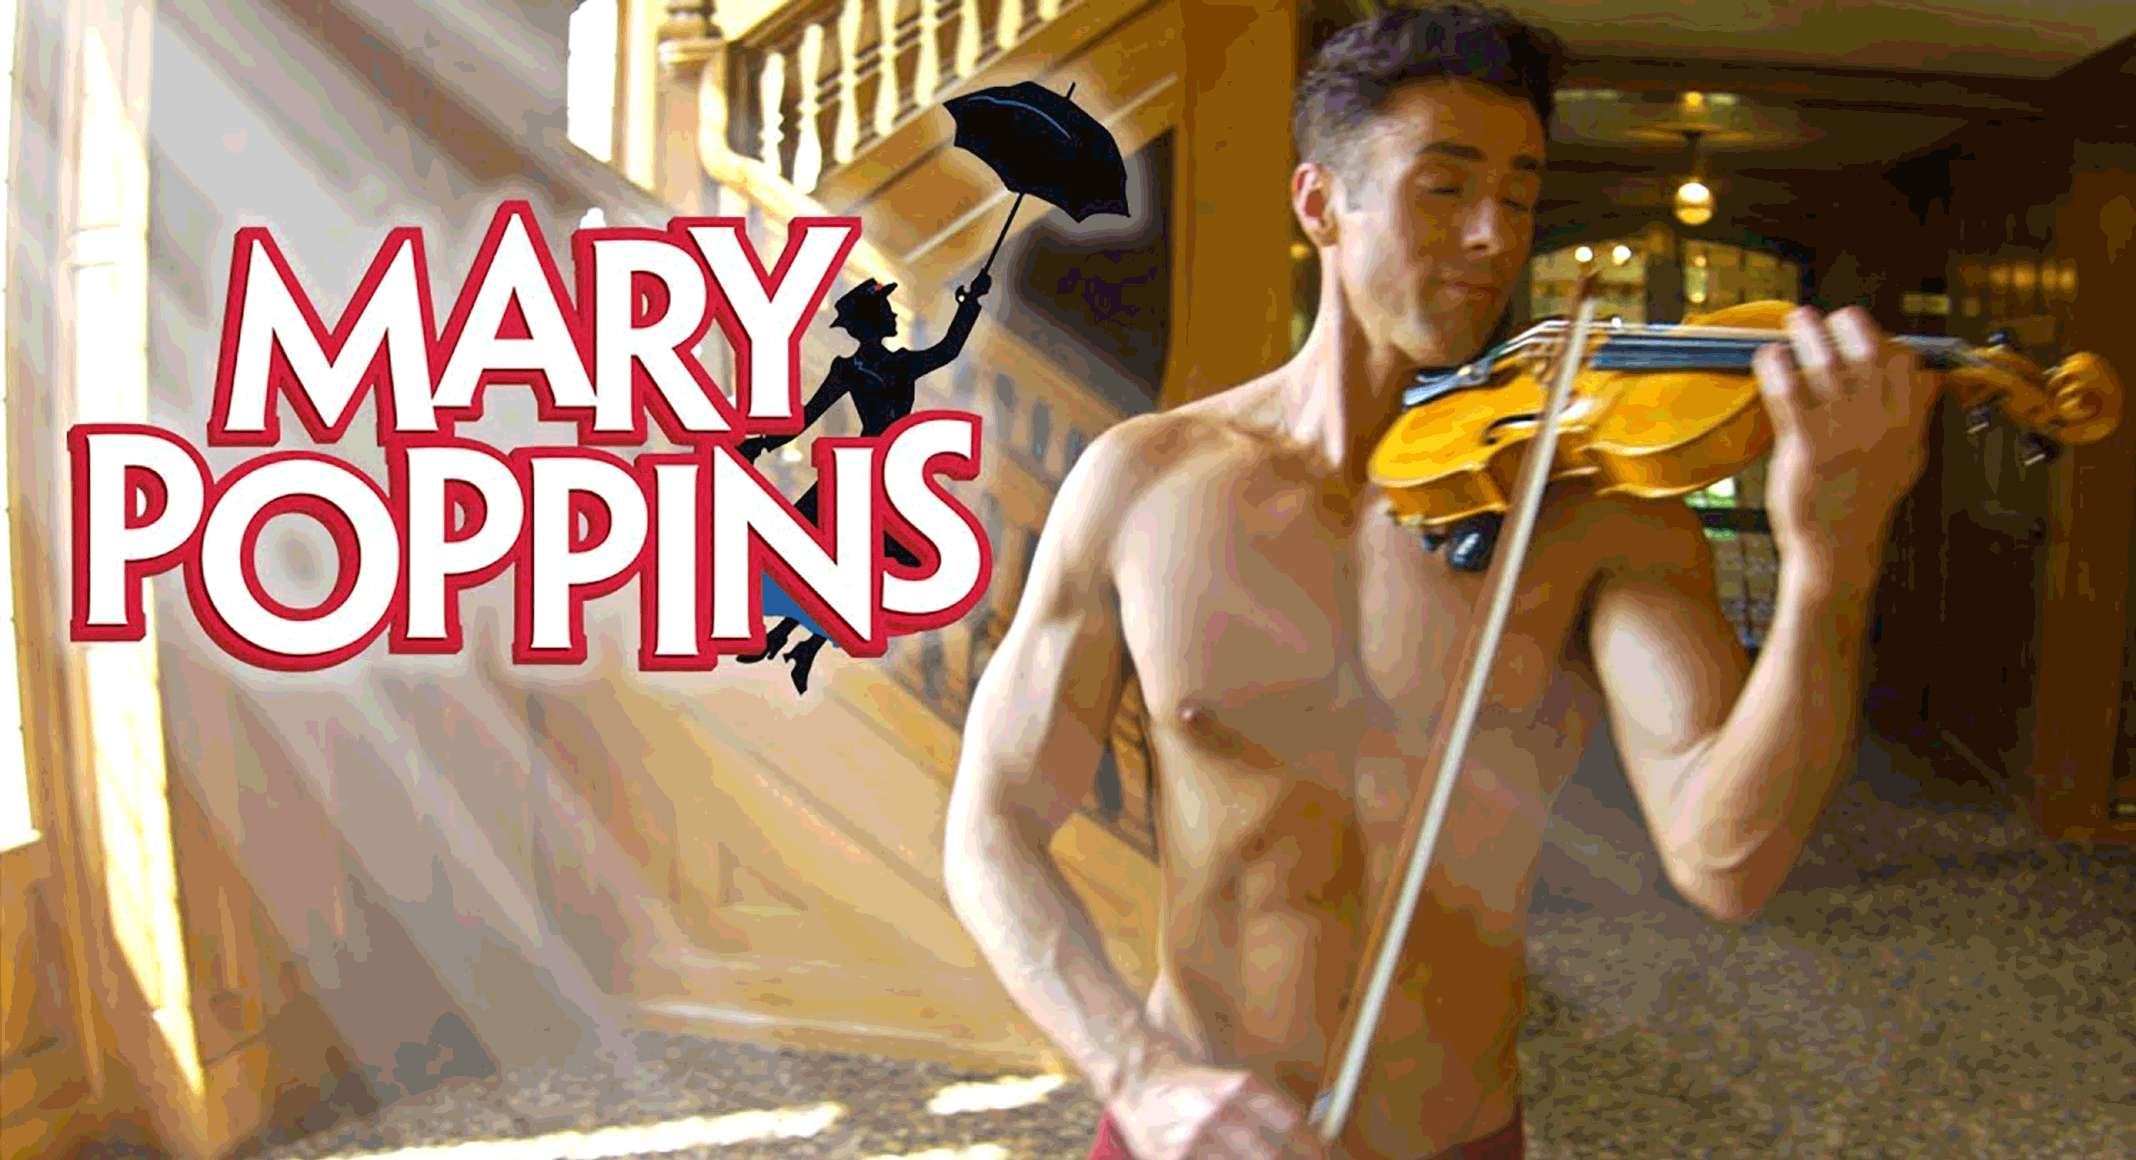 Shirtless Violinist - Mary Poppins